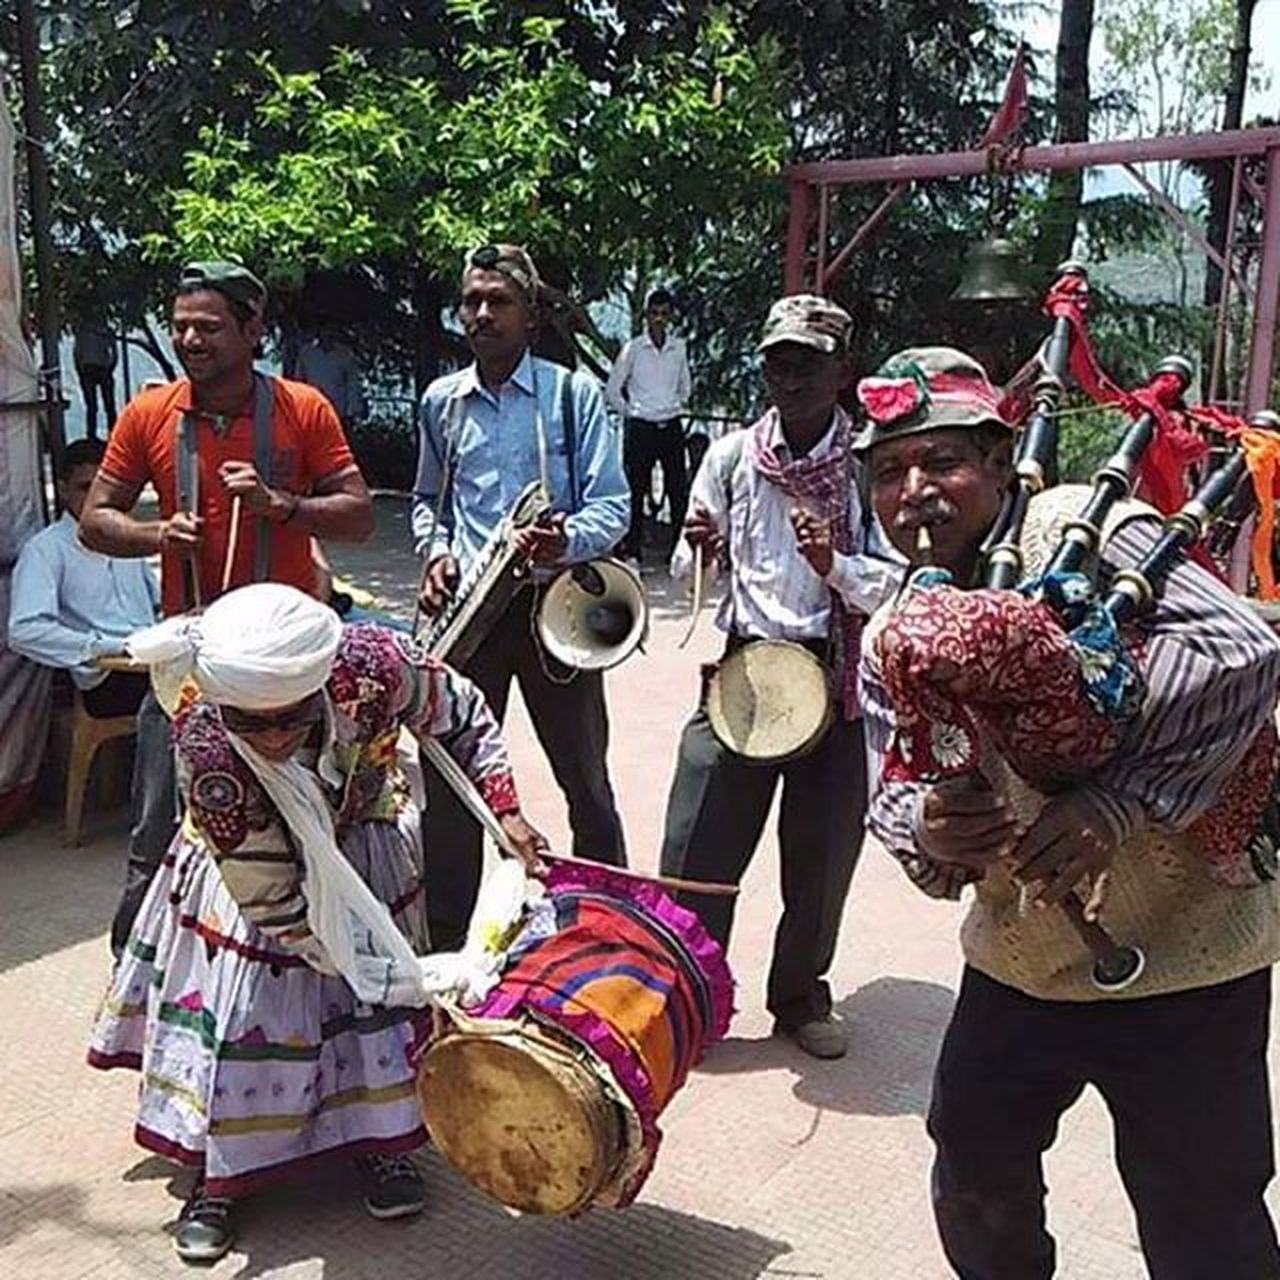 music, musical instrument, arts culture and entertainment, musician, togetherness, performance, outdoors, day, playing, guitar, real people, adult, performance group, teamwork, people, adults only, only men